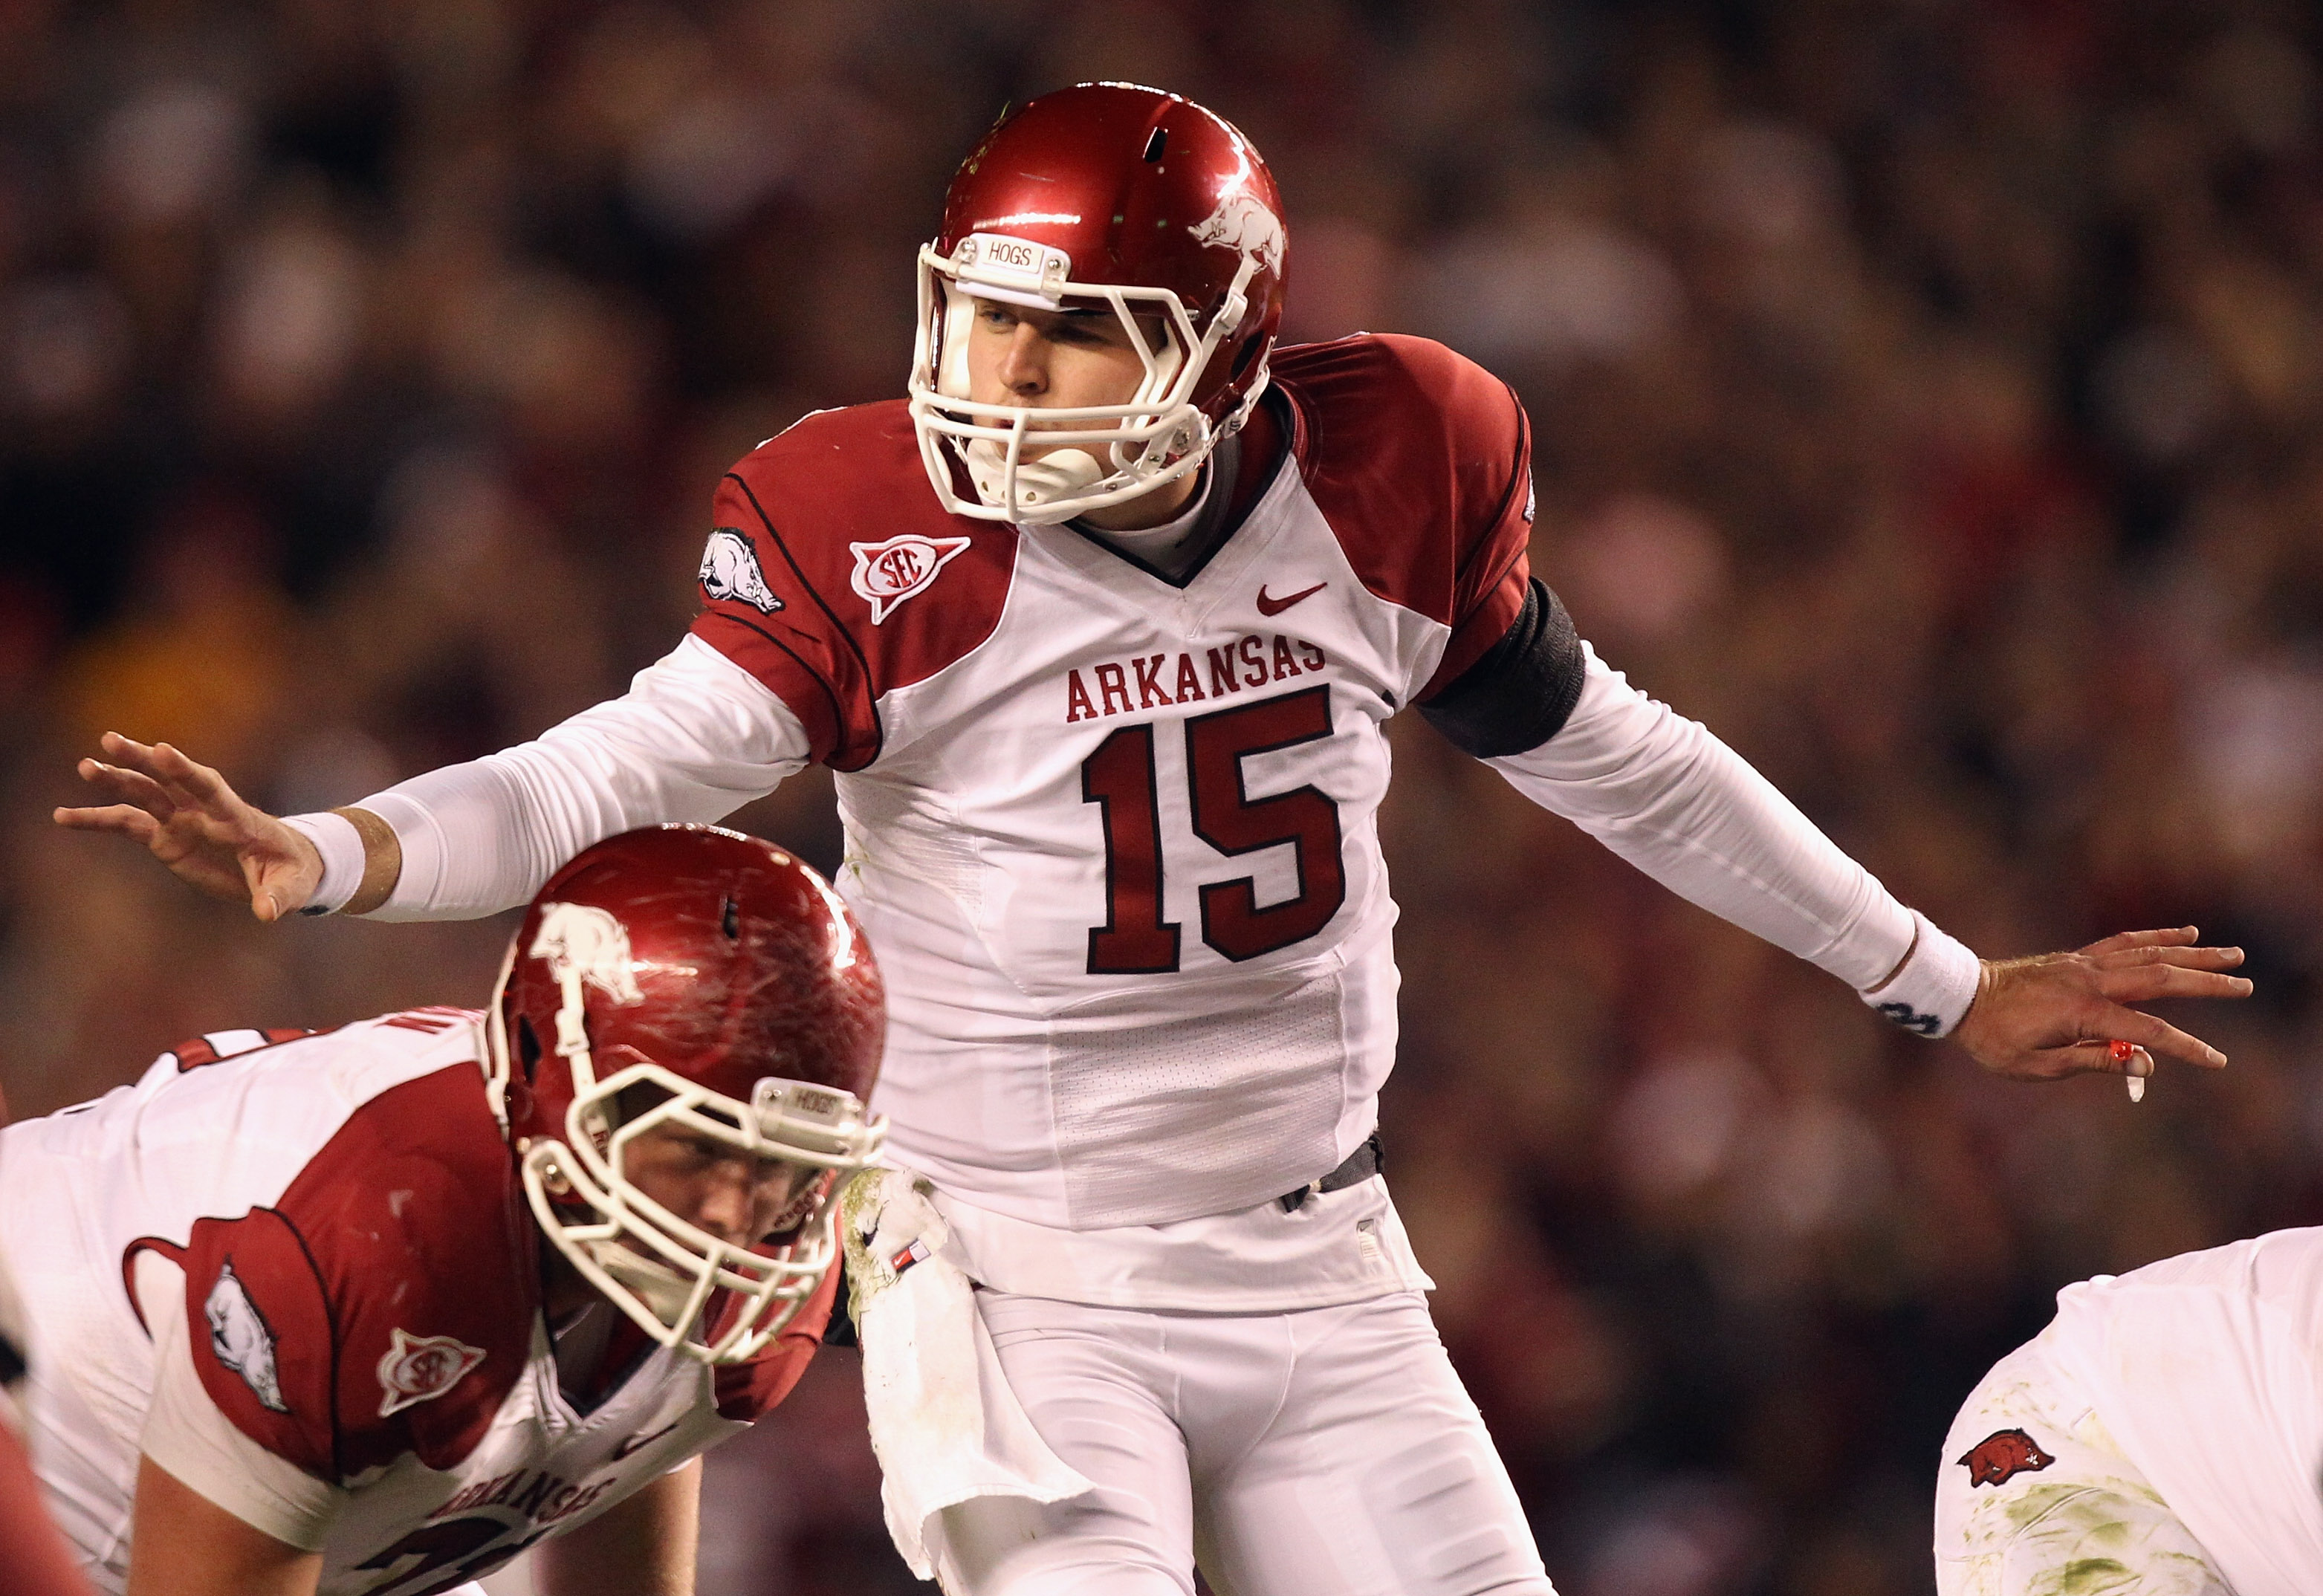 COLUMBIA, SC - NOVEMBER 06:  Ryan Mallett #15 of the Arkansas Razorbacks calls a play against the South Carolina Gamecocks during their game at Williams-Brice Stadium on November 6, 2010 in Columbia, South Carolina.  (Photo by Streeter Lecka/Getty Images)